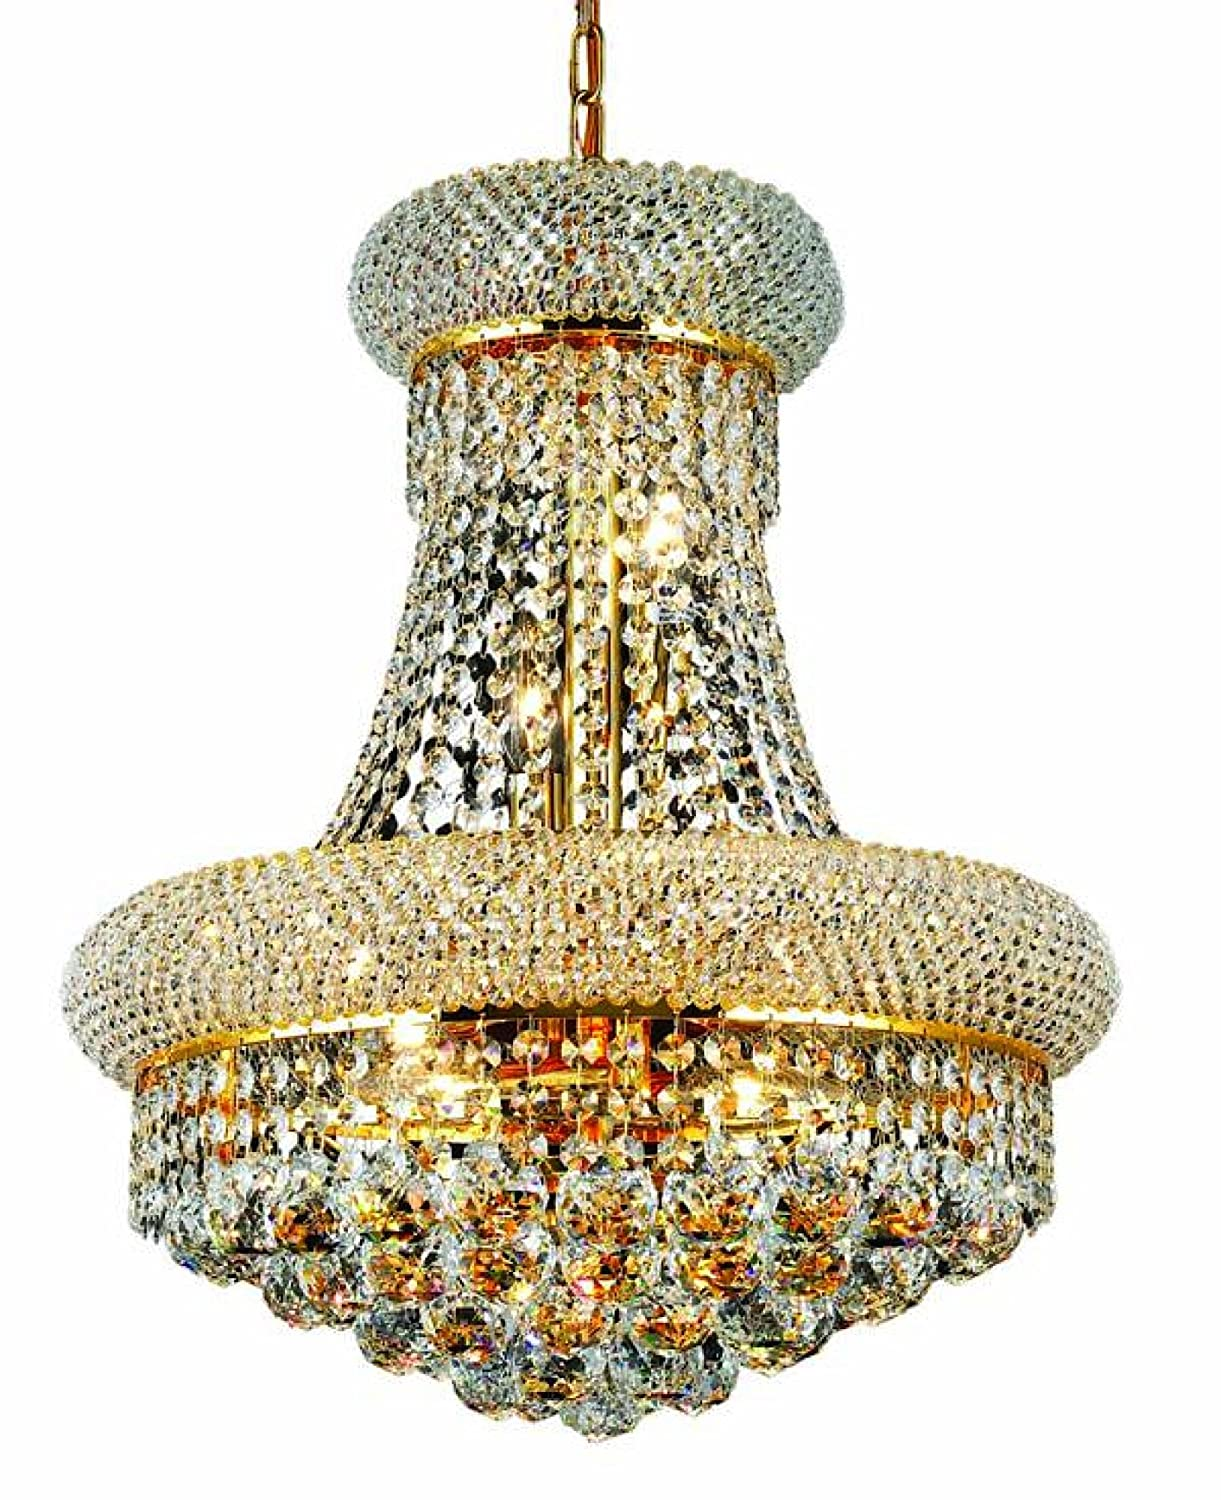 Elegant lighting 1800d16grc primo 20 inch high 8 light chandelier elegant lighting 1800d16grc primo 20 inch high 8 light chandelier gold finish with crystal clear royal cut rc crystal amazon aloadofball Choice Image